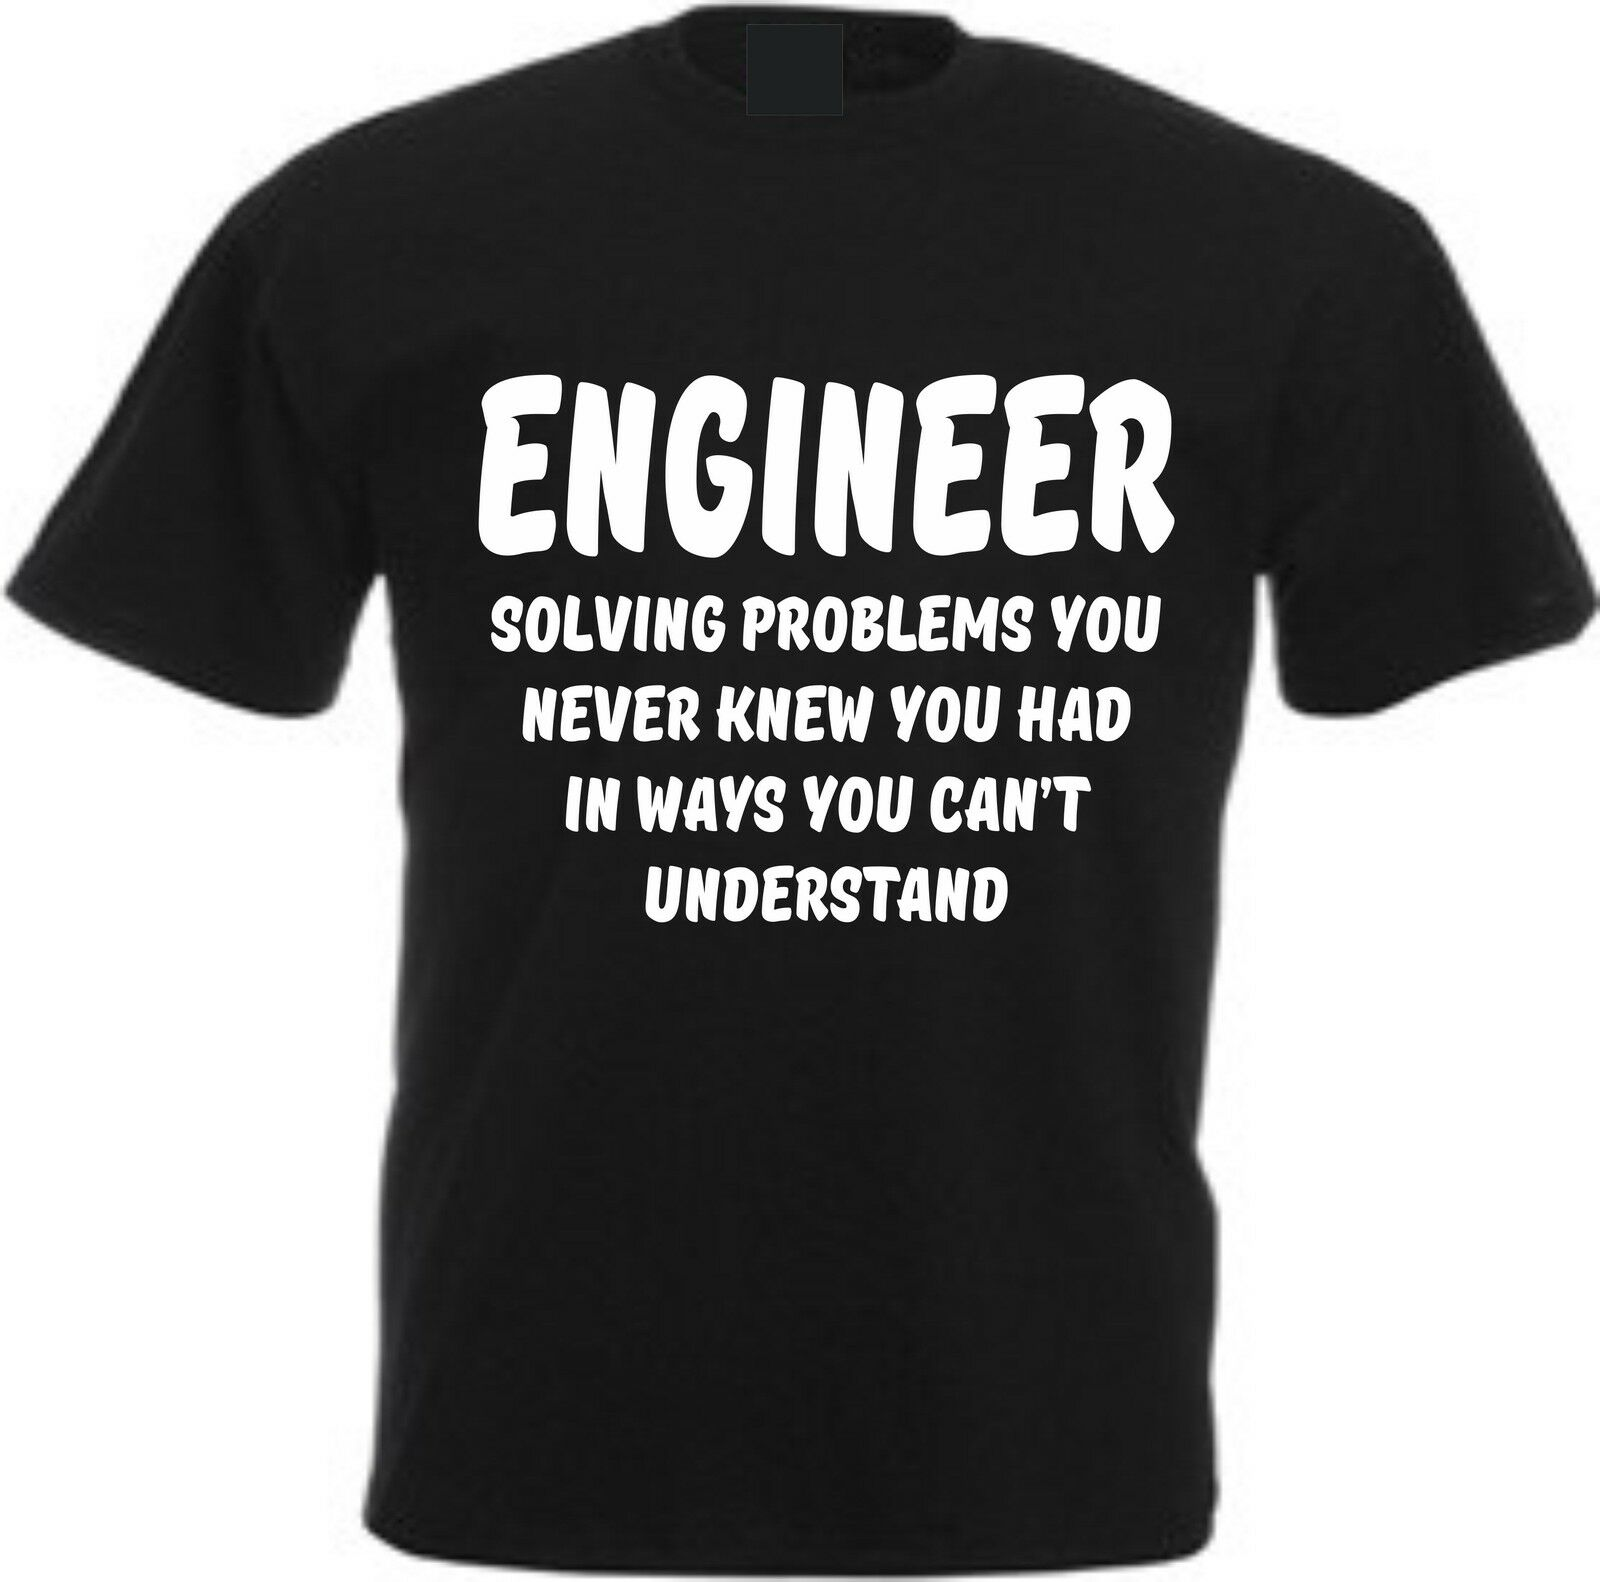 ENGINEER SOLVING PROBLEMS YOU NEVER KNEW YOU HAD FUNNY COTTON T SHIRTcustom Environmental printed Tshirt cheap wholesale